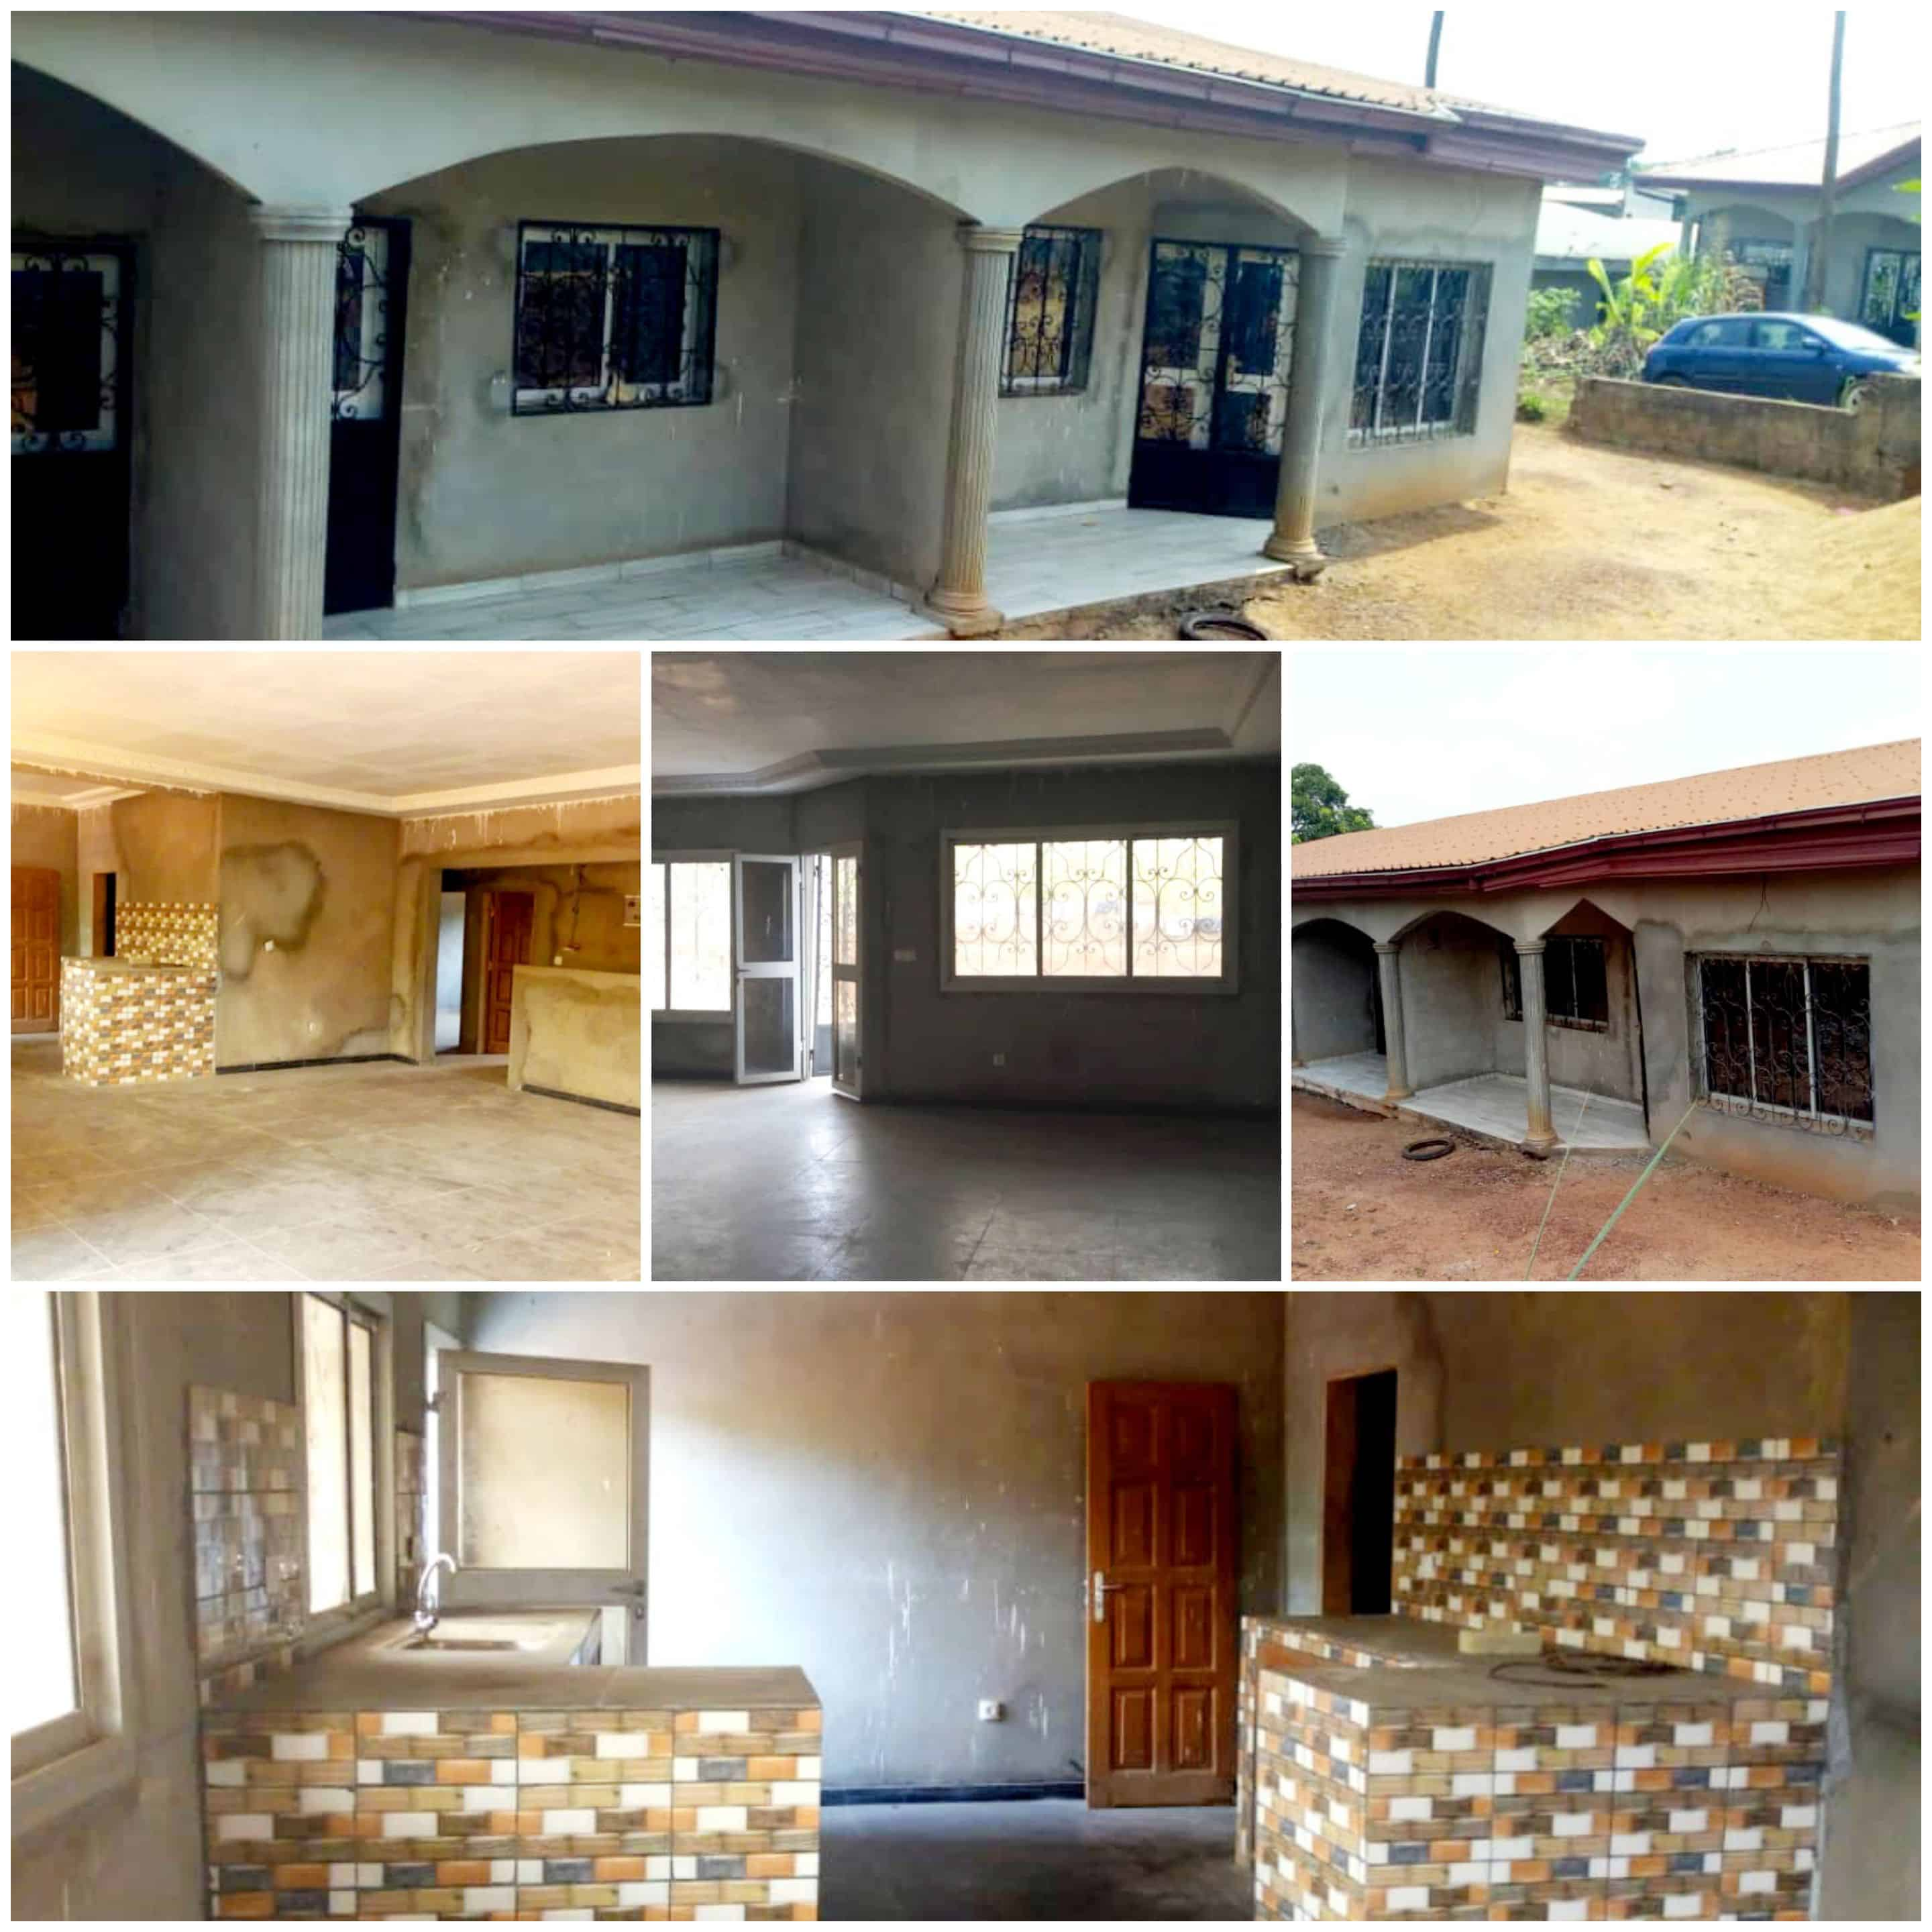 House (Villa) for sale - Yaoundé, Mfou, Abang-yaoundé - 1 living room(s), 3 bedroom(s), 2 bathroom(s) - 37 000 000 FCFA / month